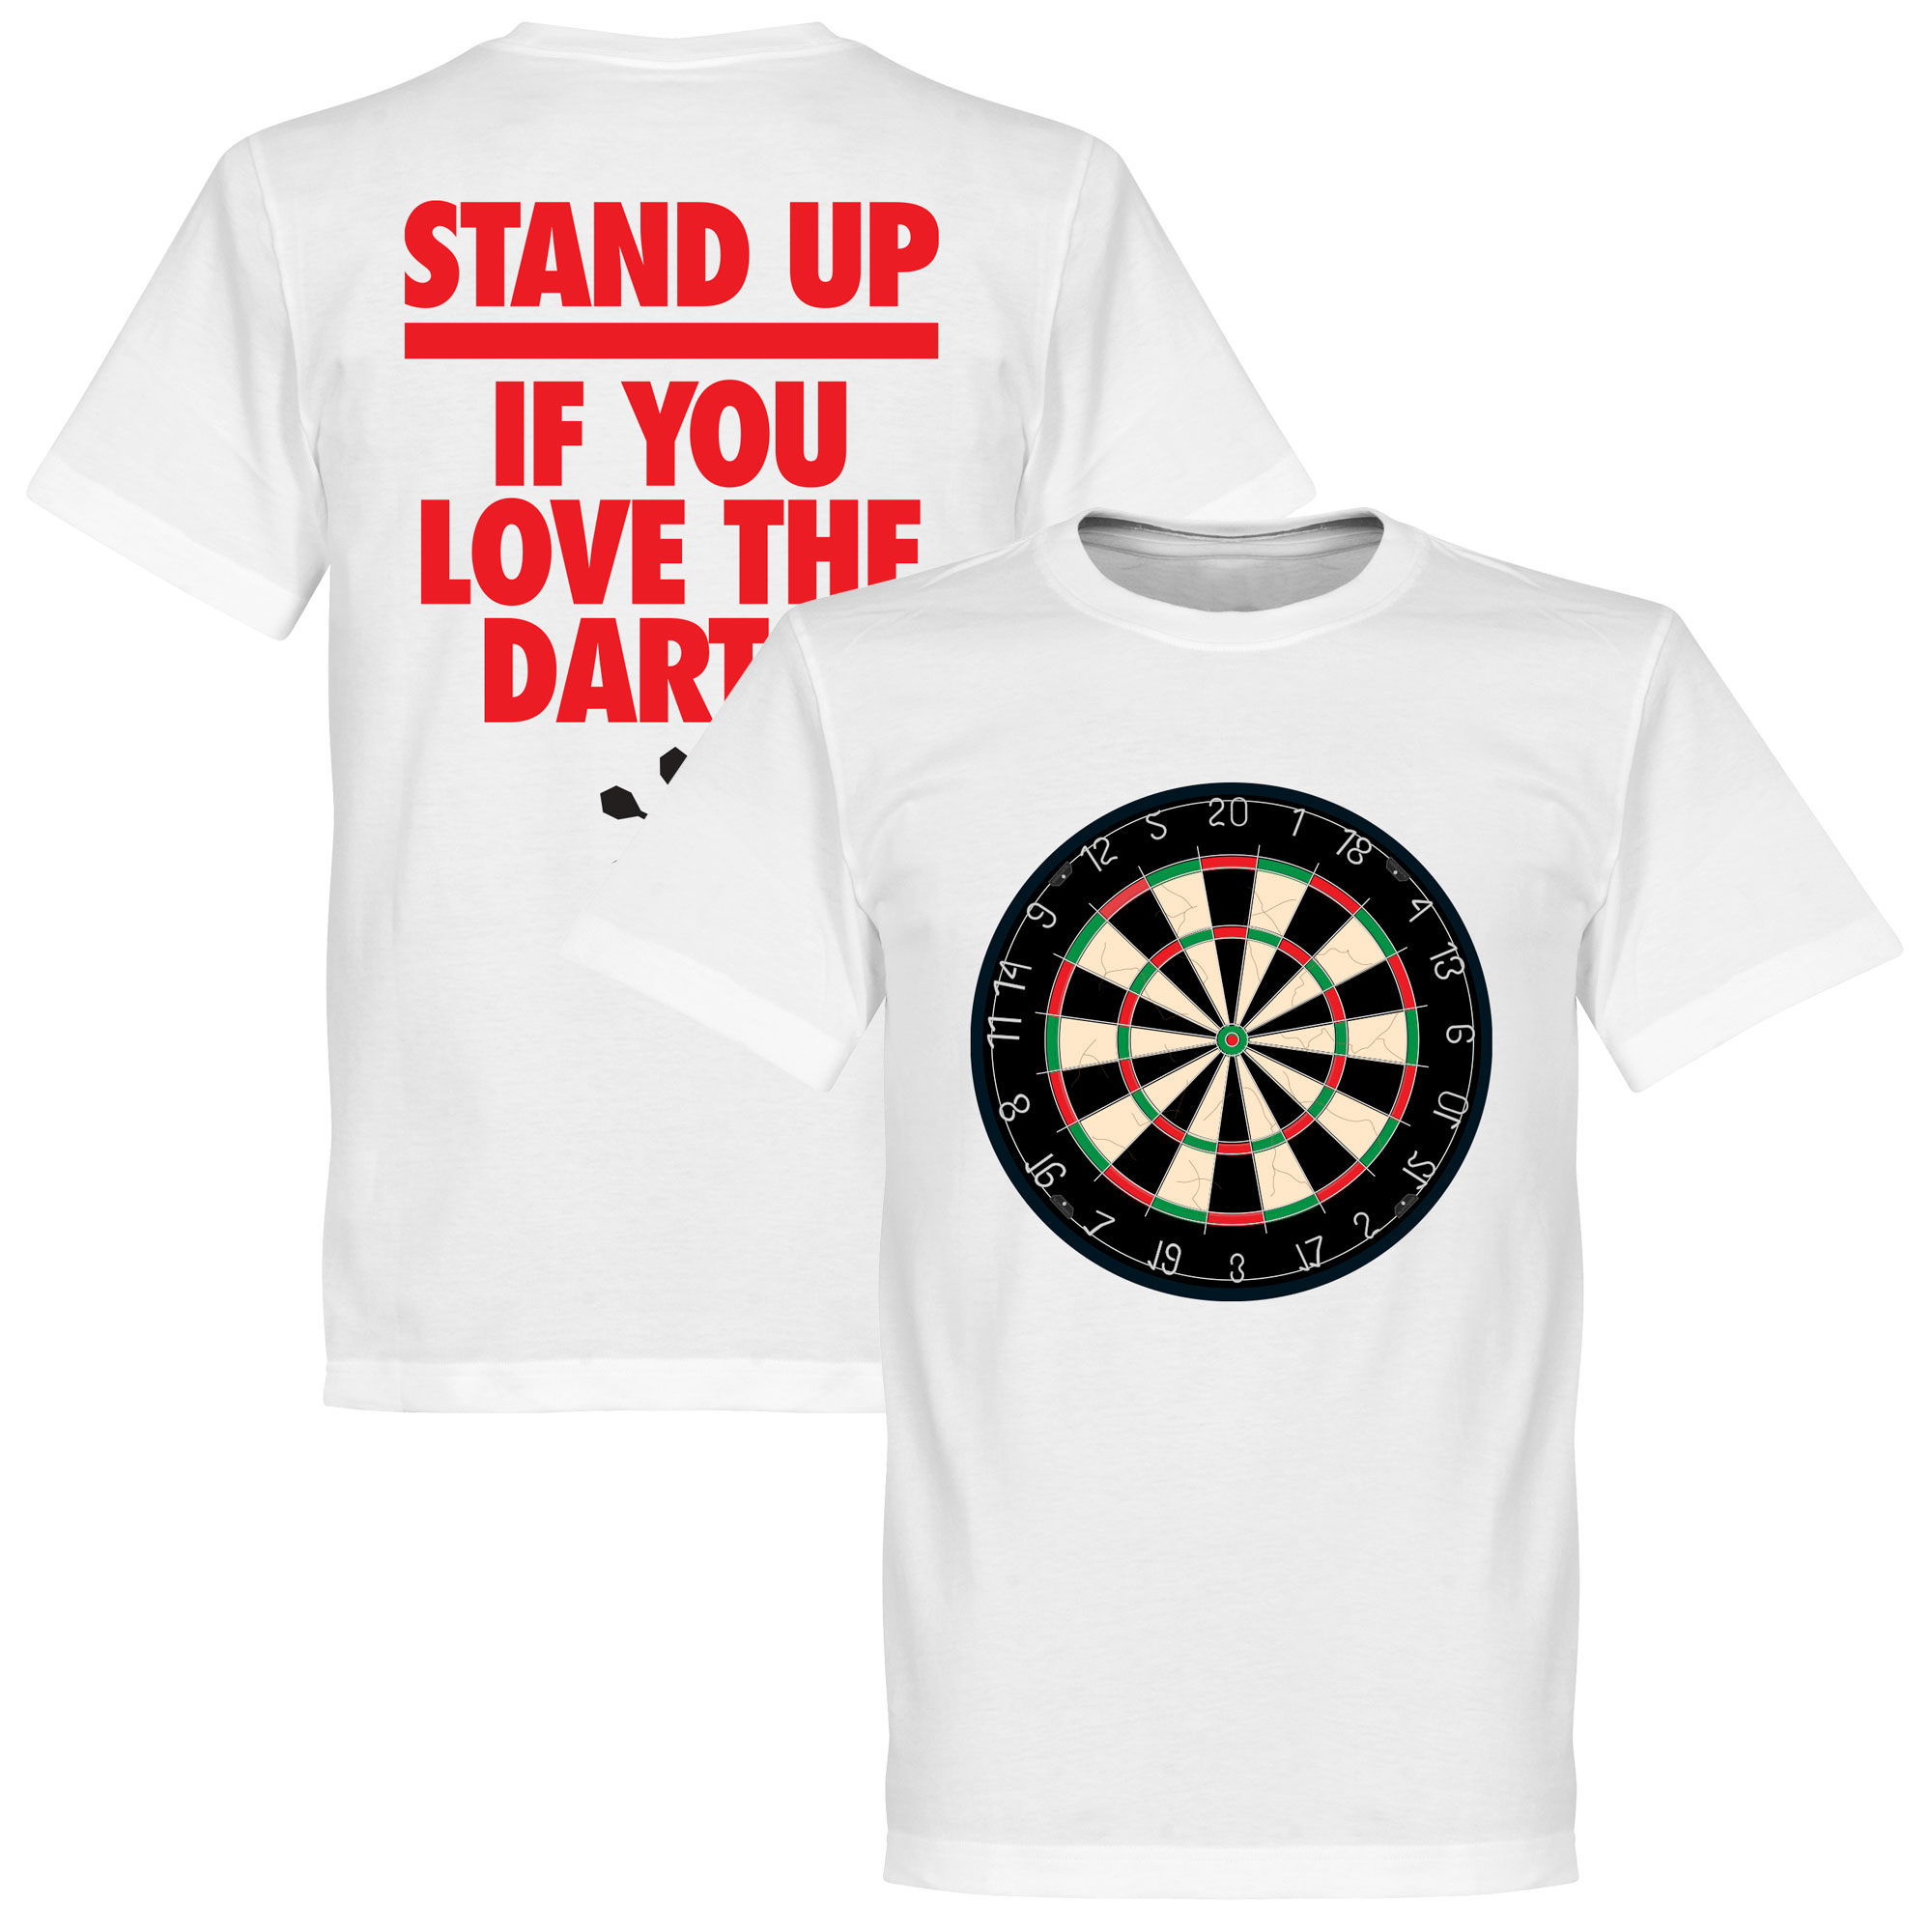 Stand Up If You Love The Darts T-Shirt - 5XL